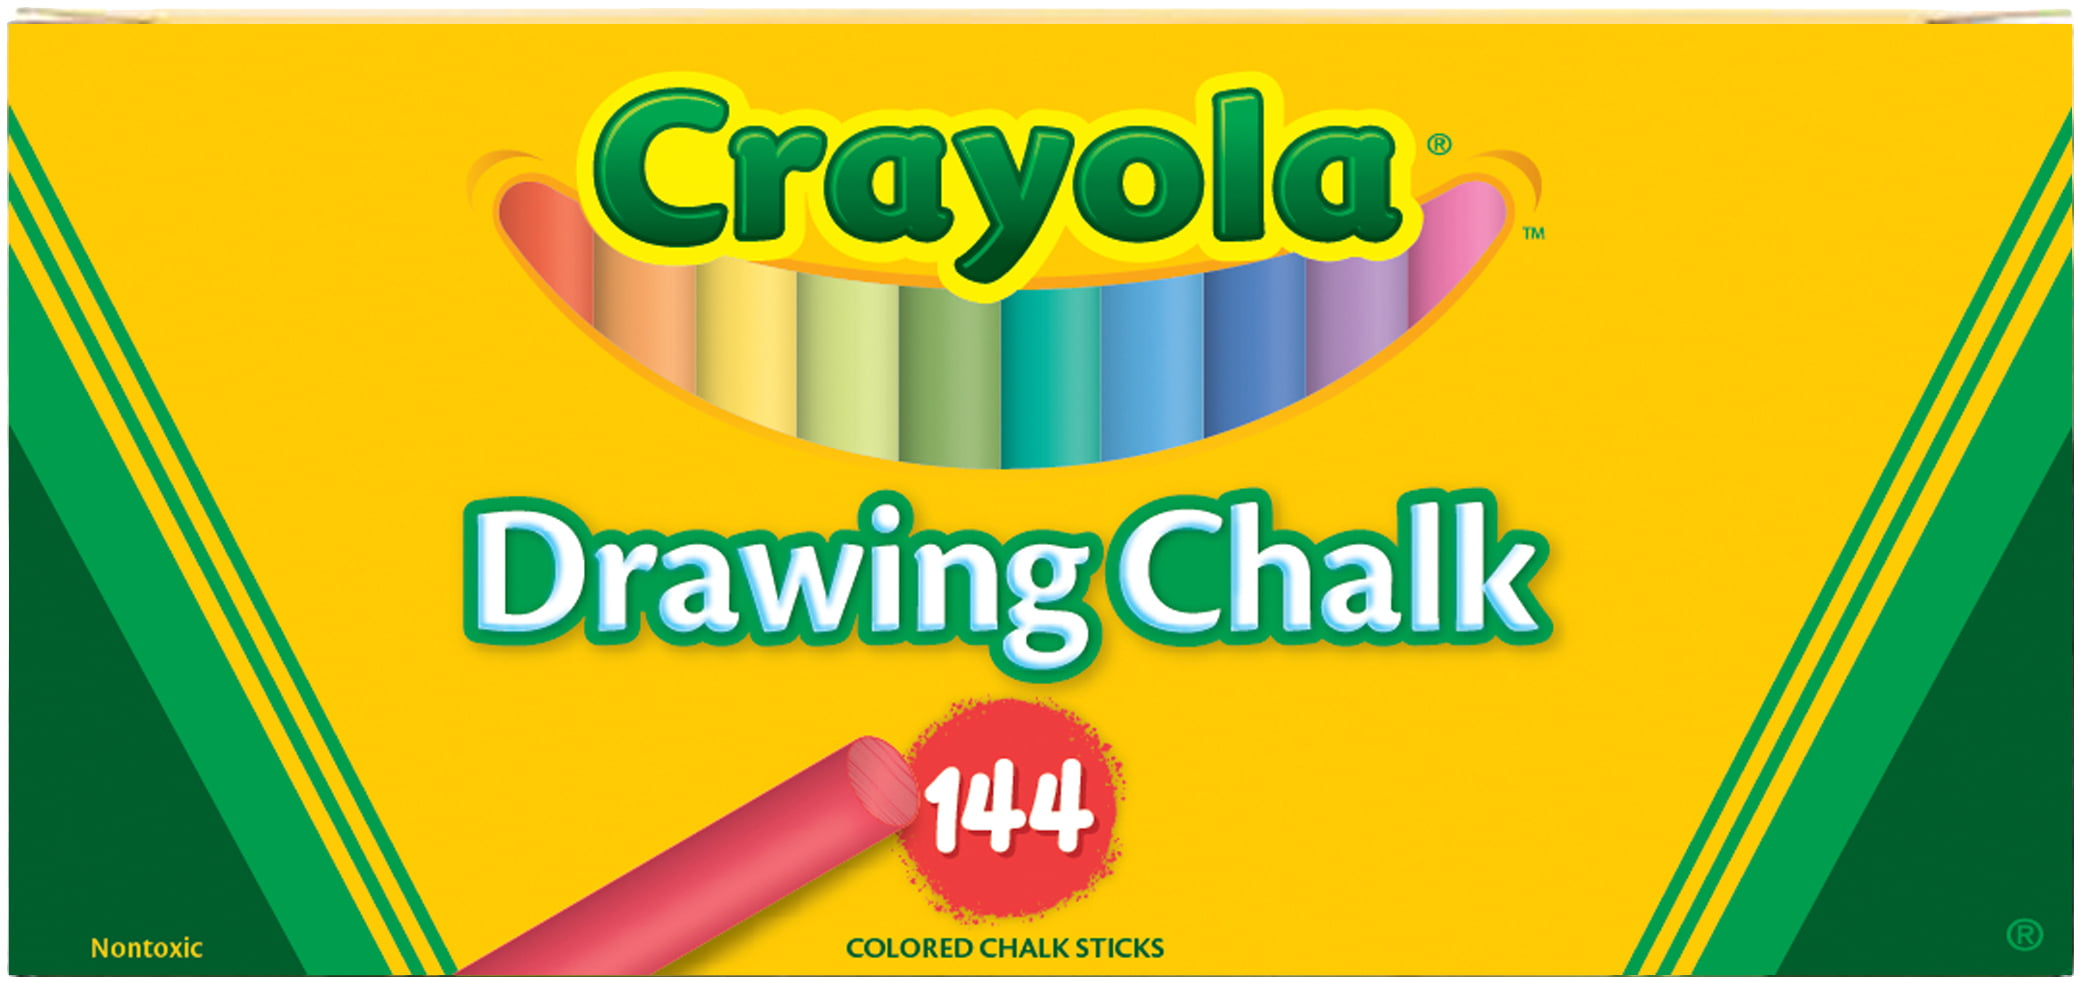 Crayola Drawing Chalk 144 Pkg by Crayola